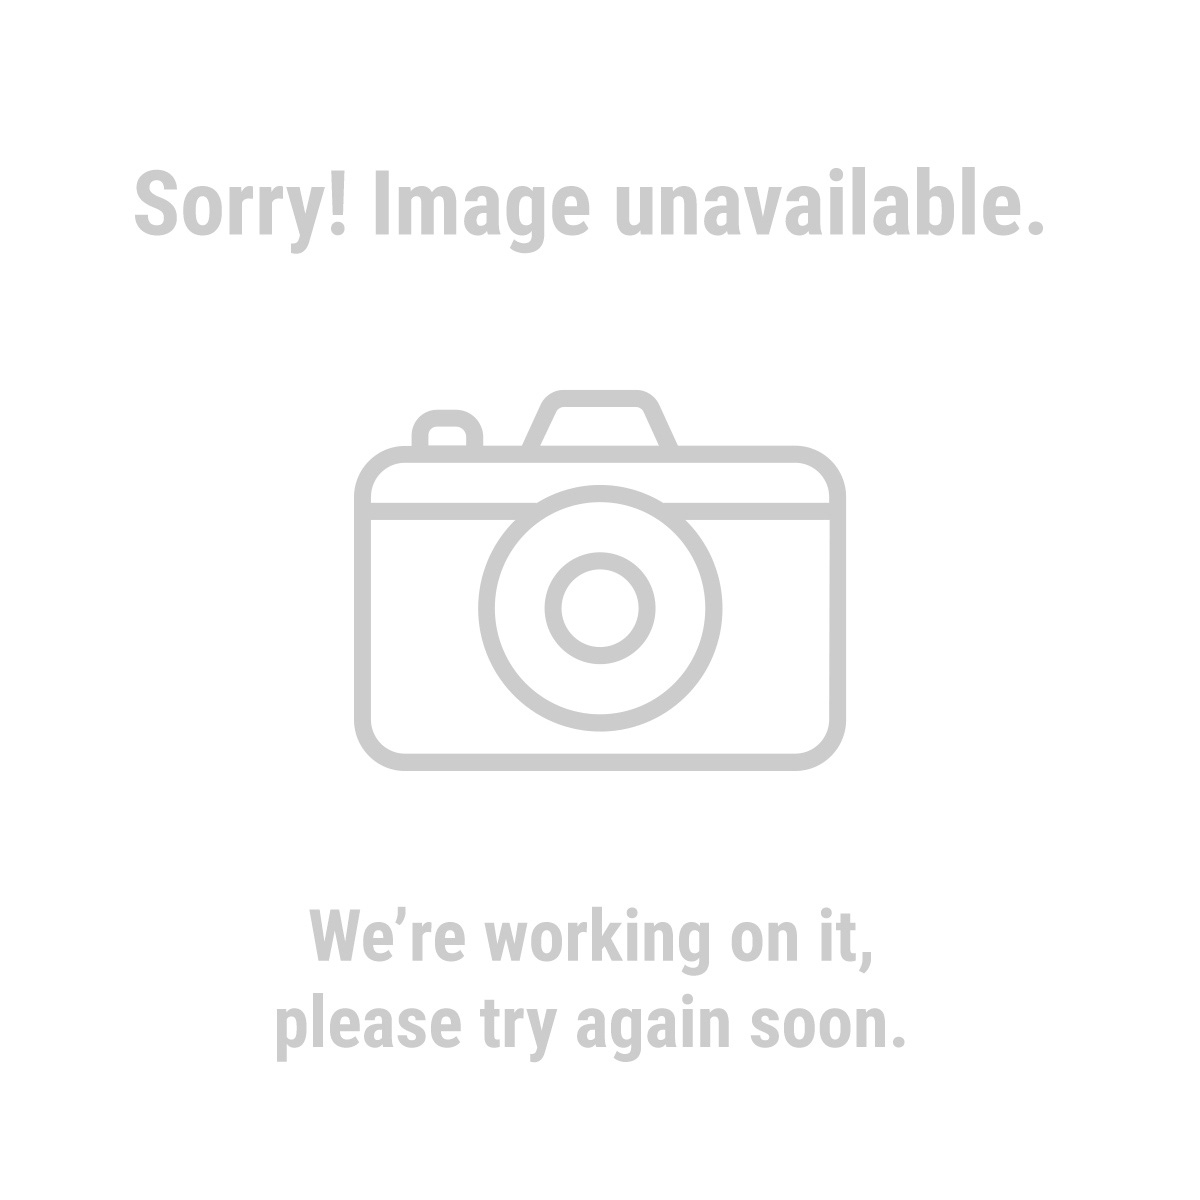 Cen-Tech 94130 3 Piece Circuit Tester Set